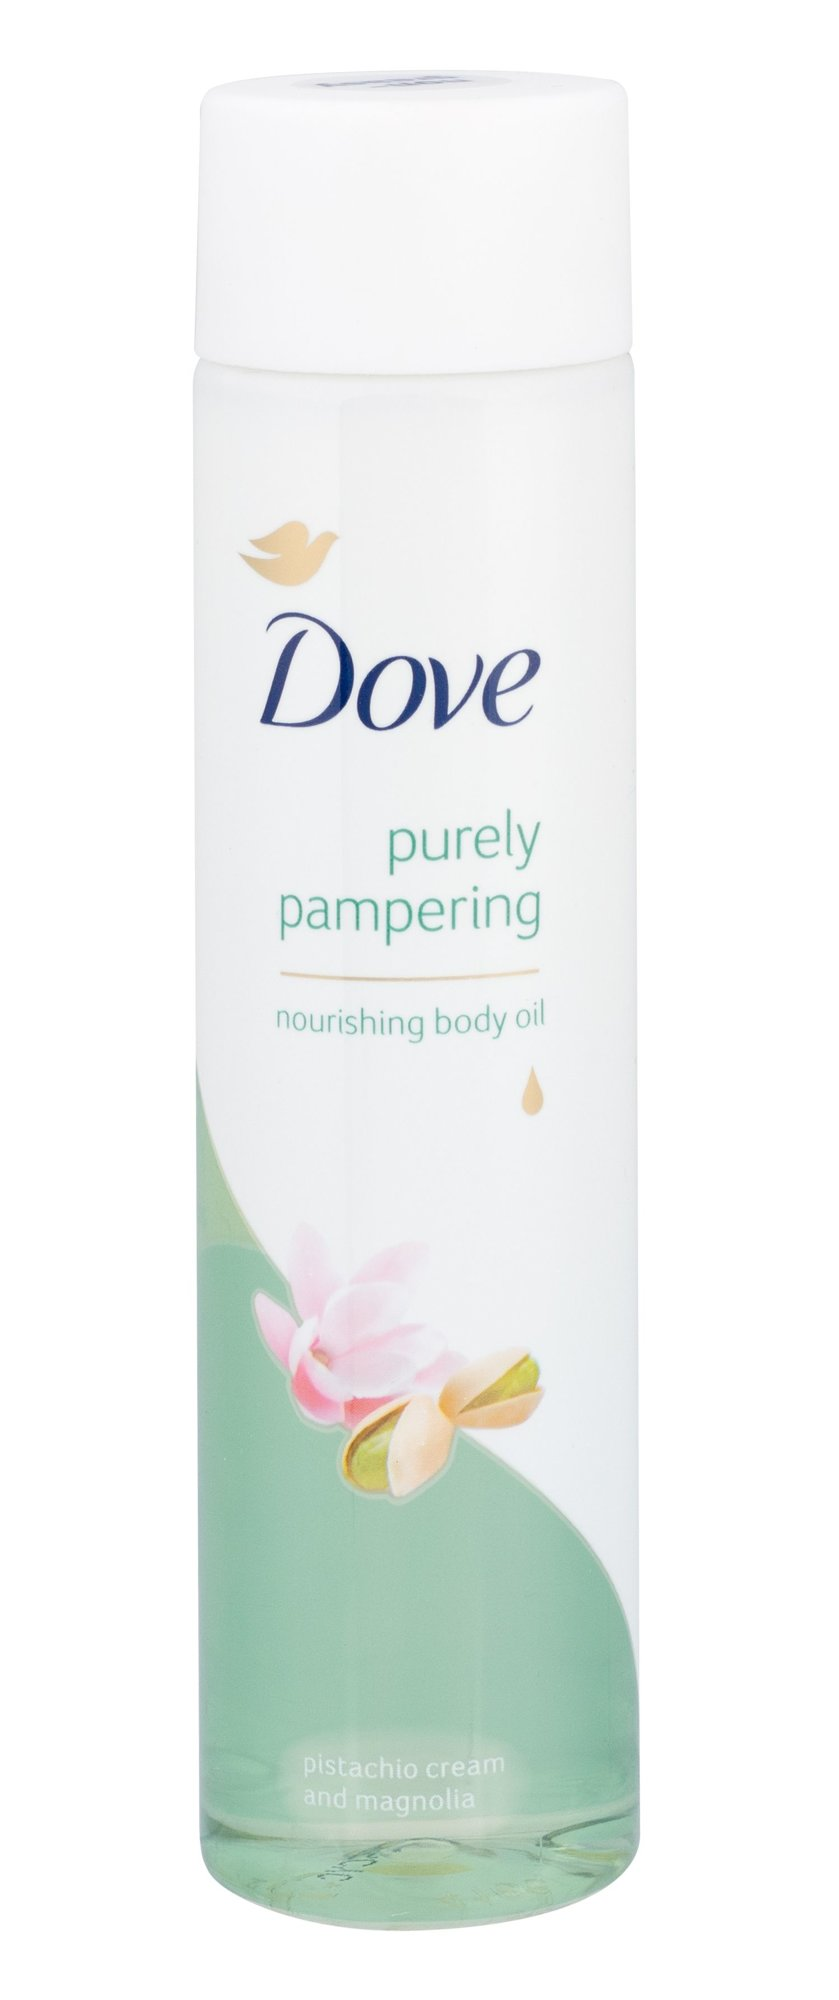 Dove Purely Pampering Cosmetic 150ml